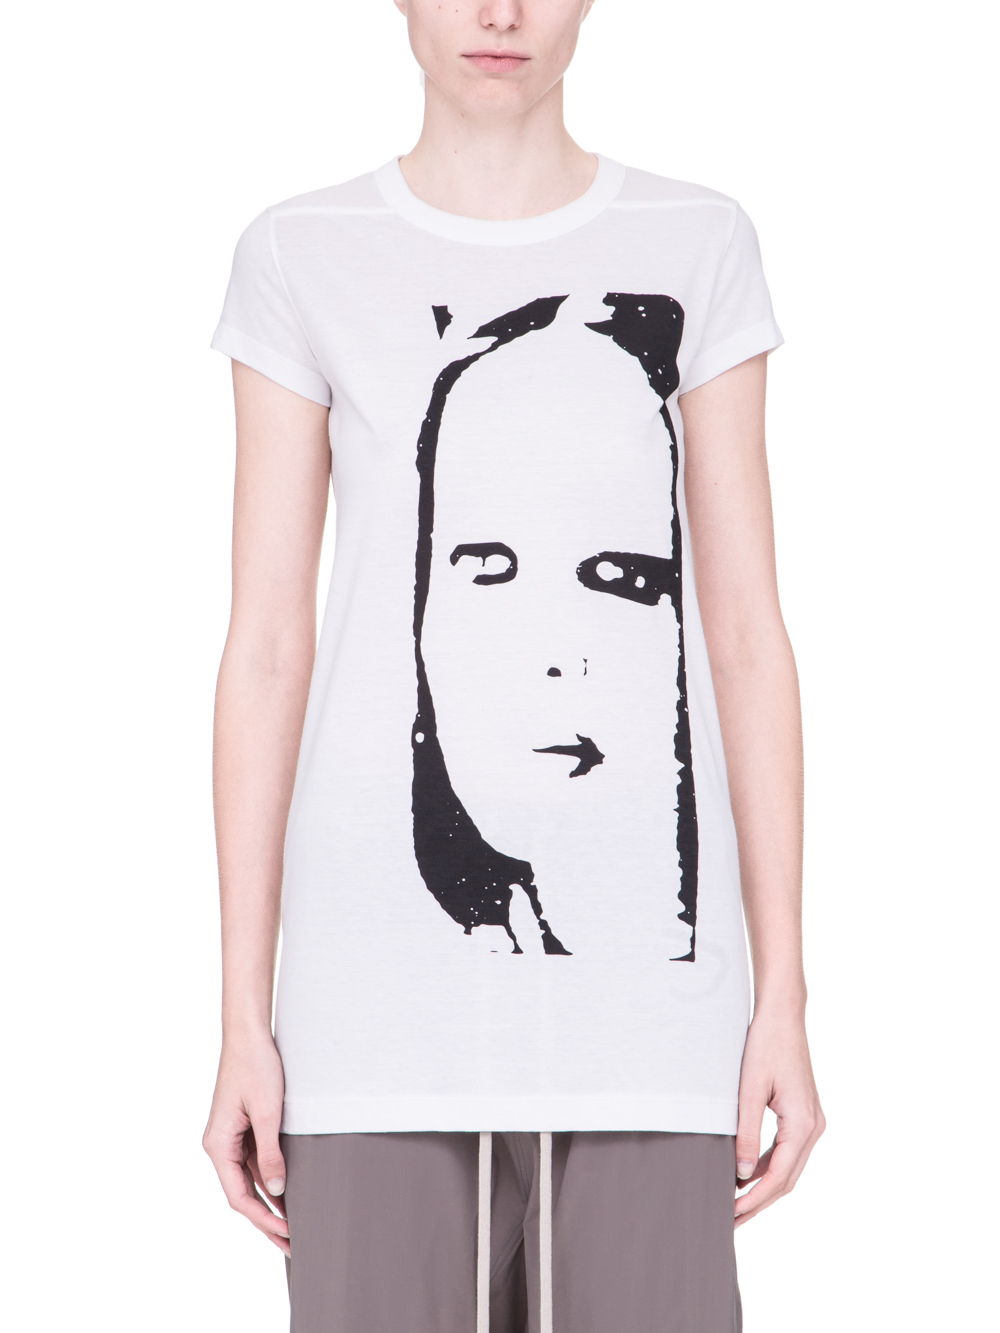 RICK OWENS SS19 BABEL LEVEL SHORTSLEEVE TEE IN WHITE COTTON FEATURES A BLACK OVERSIZED KEMBRA PRINT ON THE FRONT